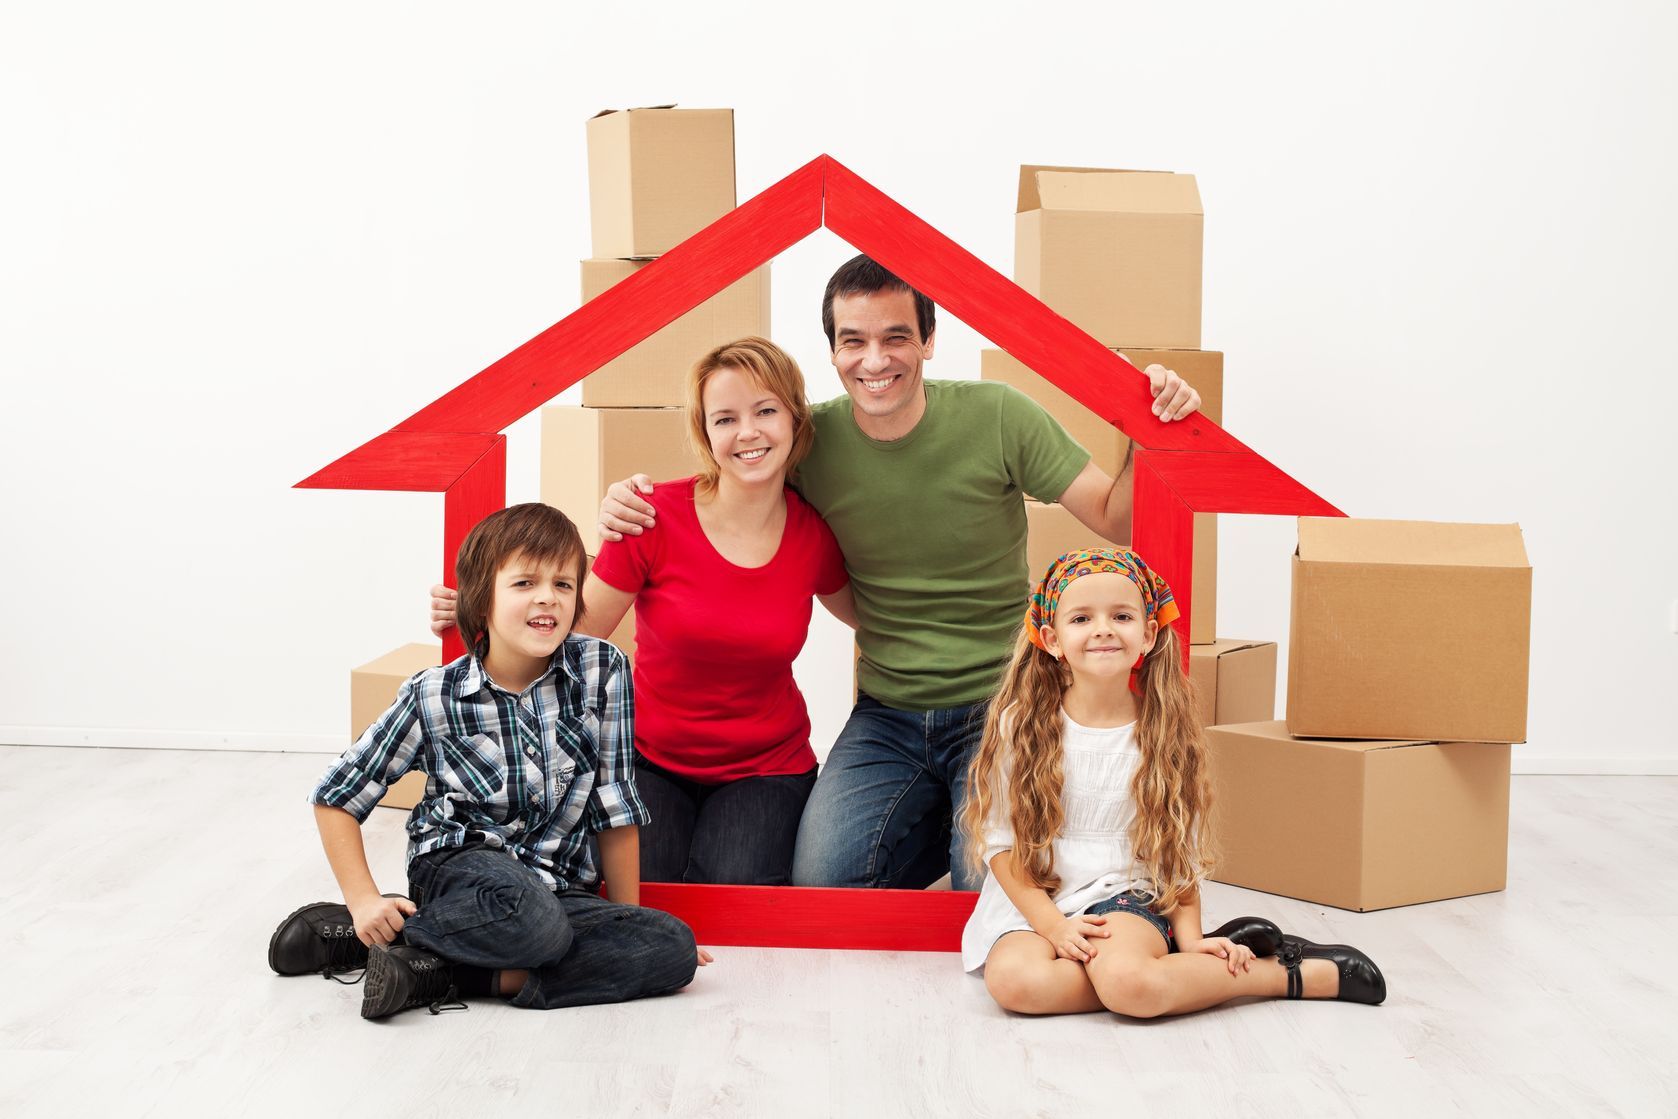 Los Angeles, CA. Homeowners Insurance